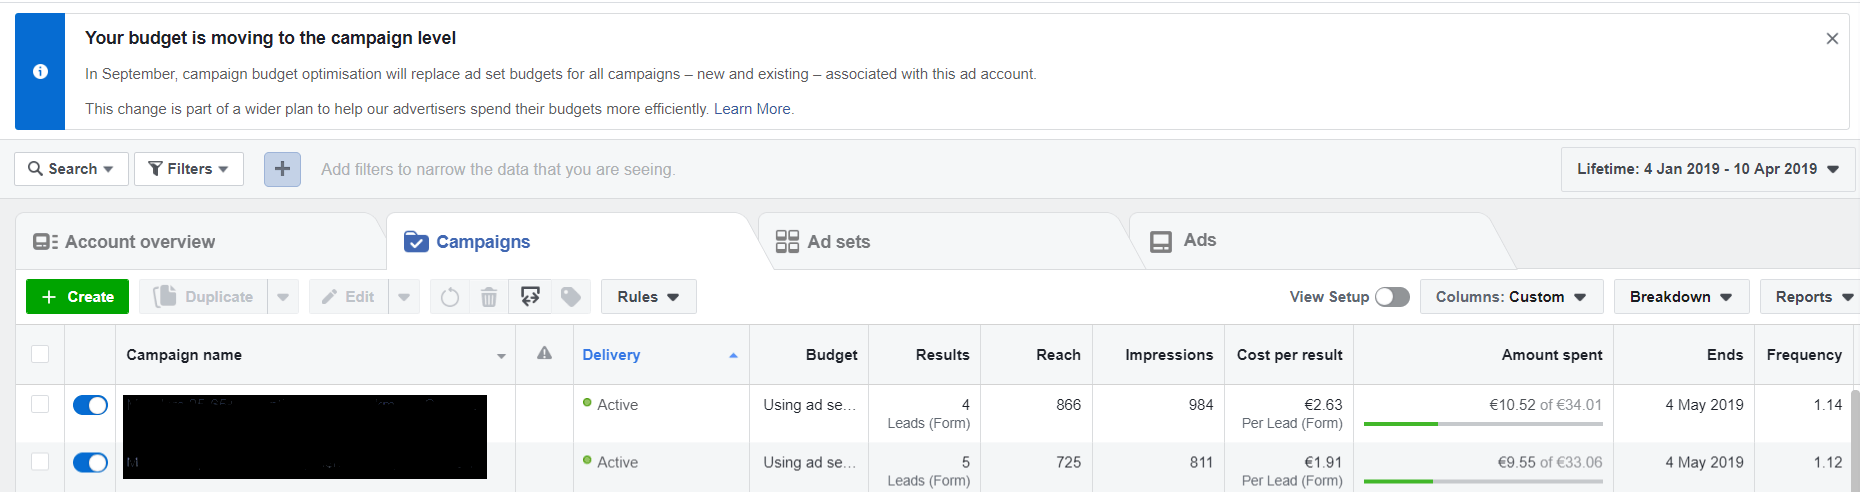 fb ads splittesting case study dentist dental social media marketing